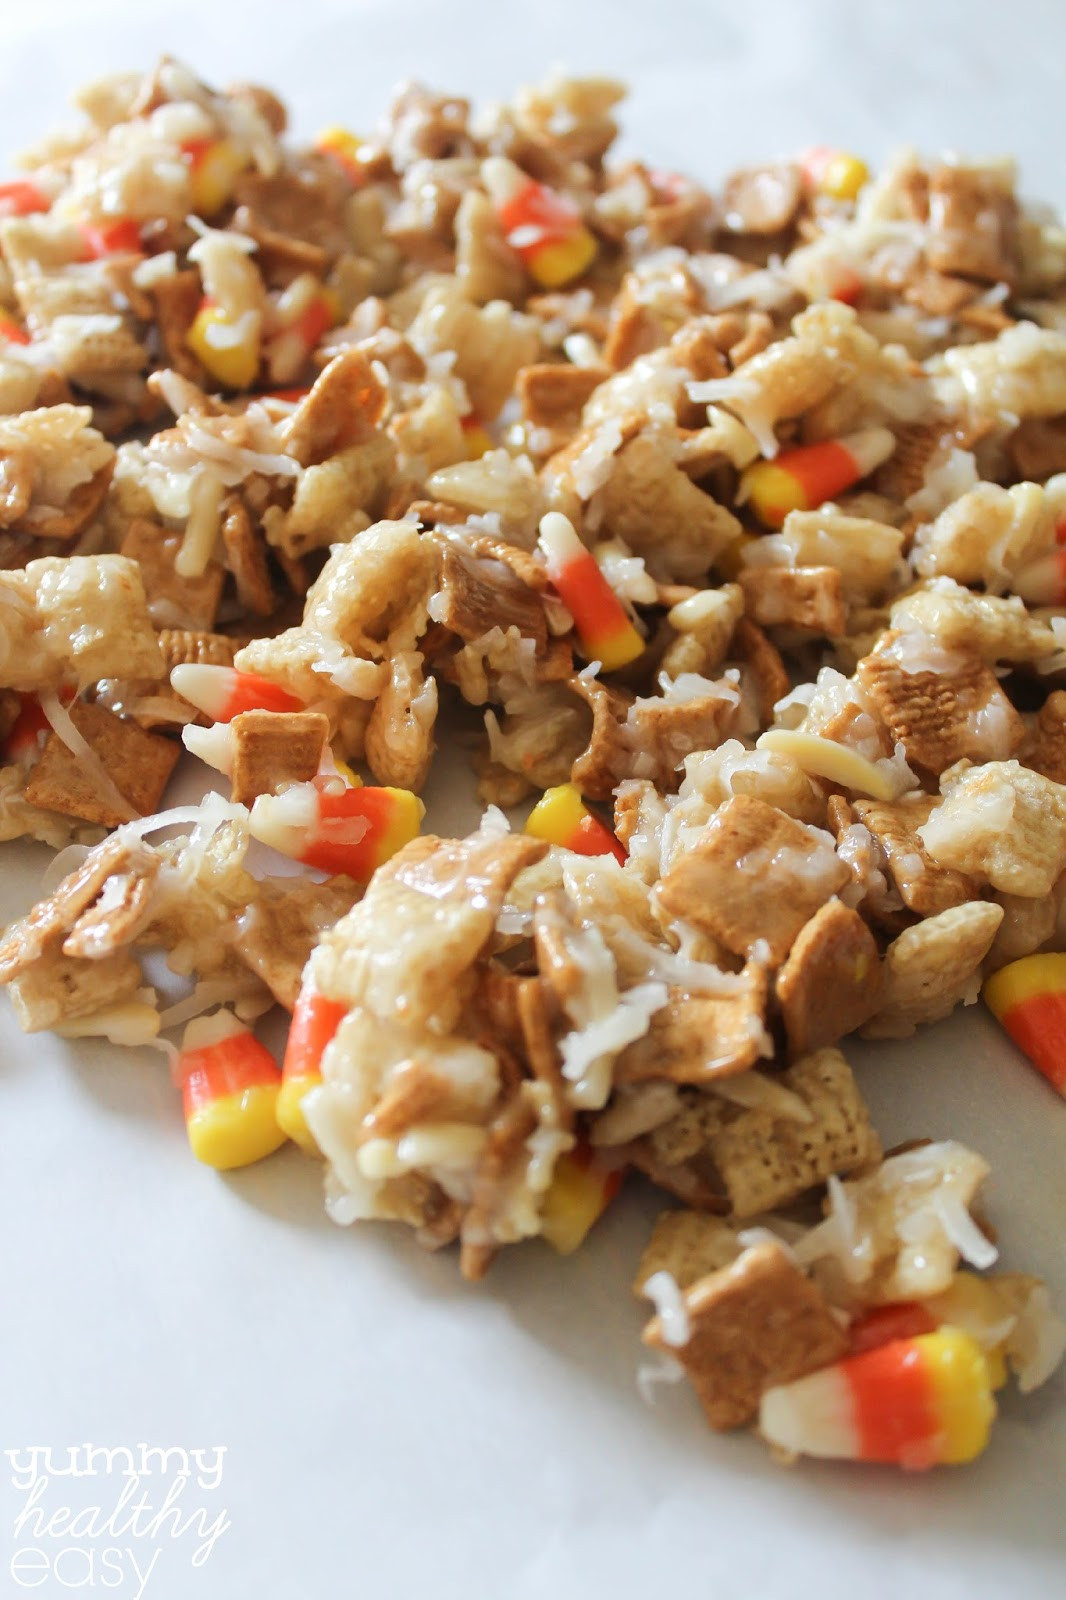 Healthy Candy Snacks  Candy Corn Cereal Snack Mix Yummy Healthy Easy